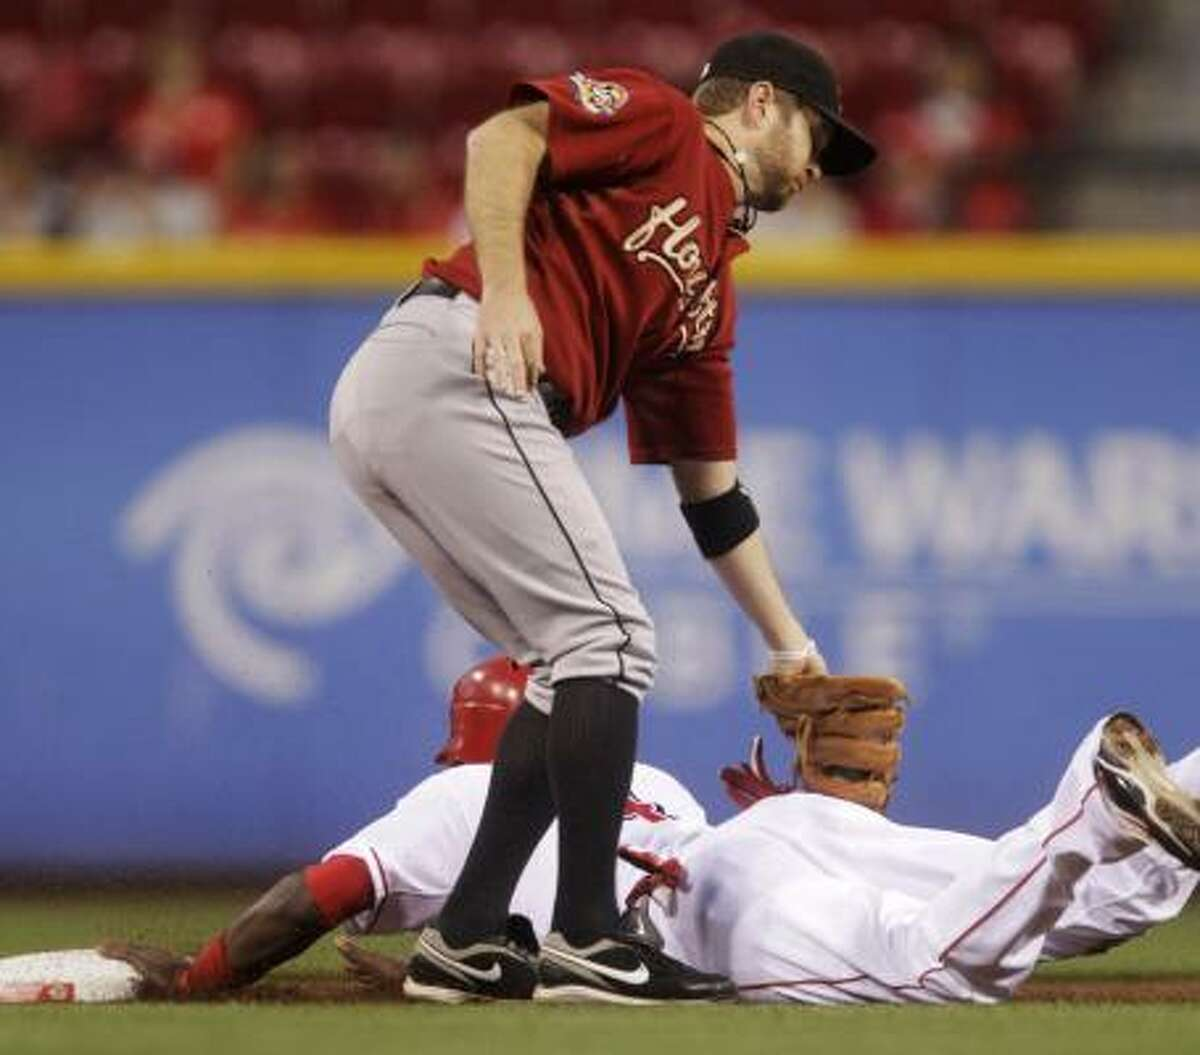 Sept. 30: Reds 9, Astros 1 Cincinnati's Brandon Phillips, bottom. steals second base ahead of the tag by Astros second baseman Jeff Keppinger in the first inning of Thursday's series finale.